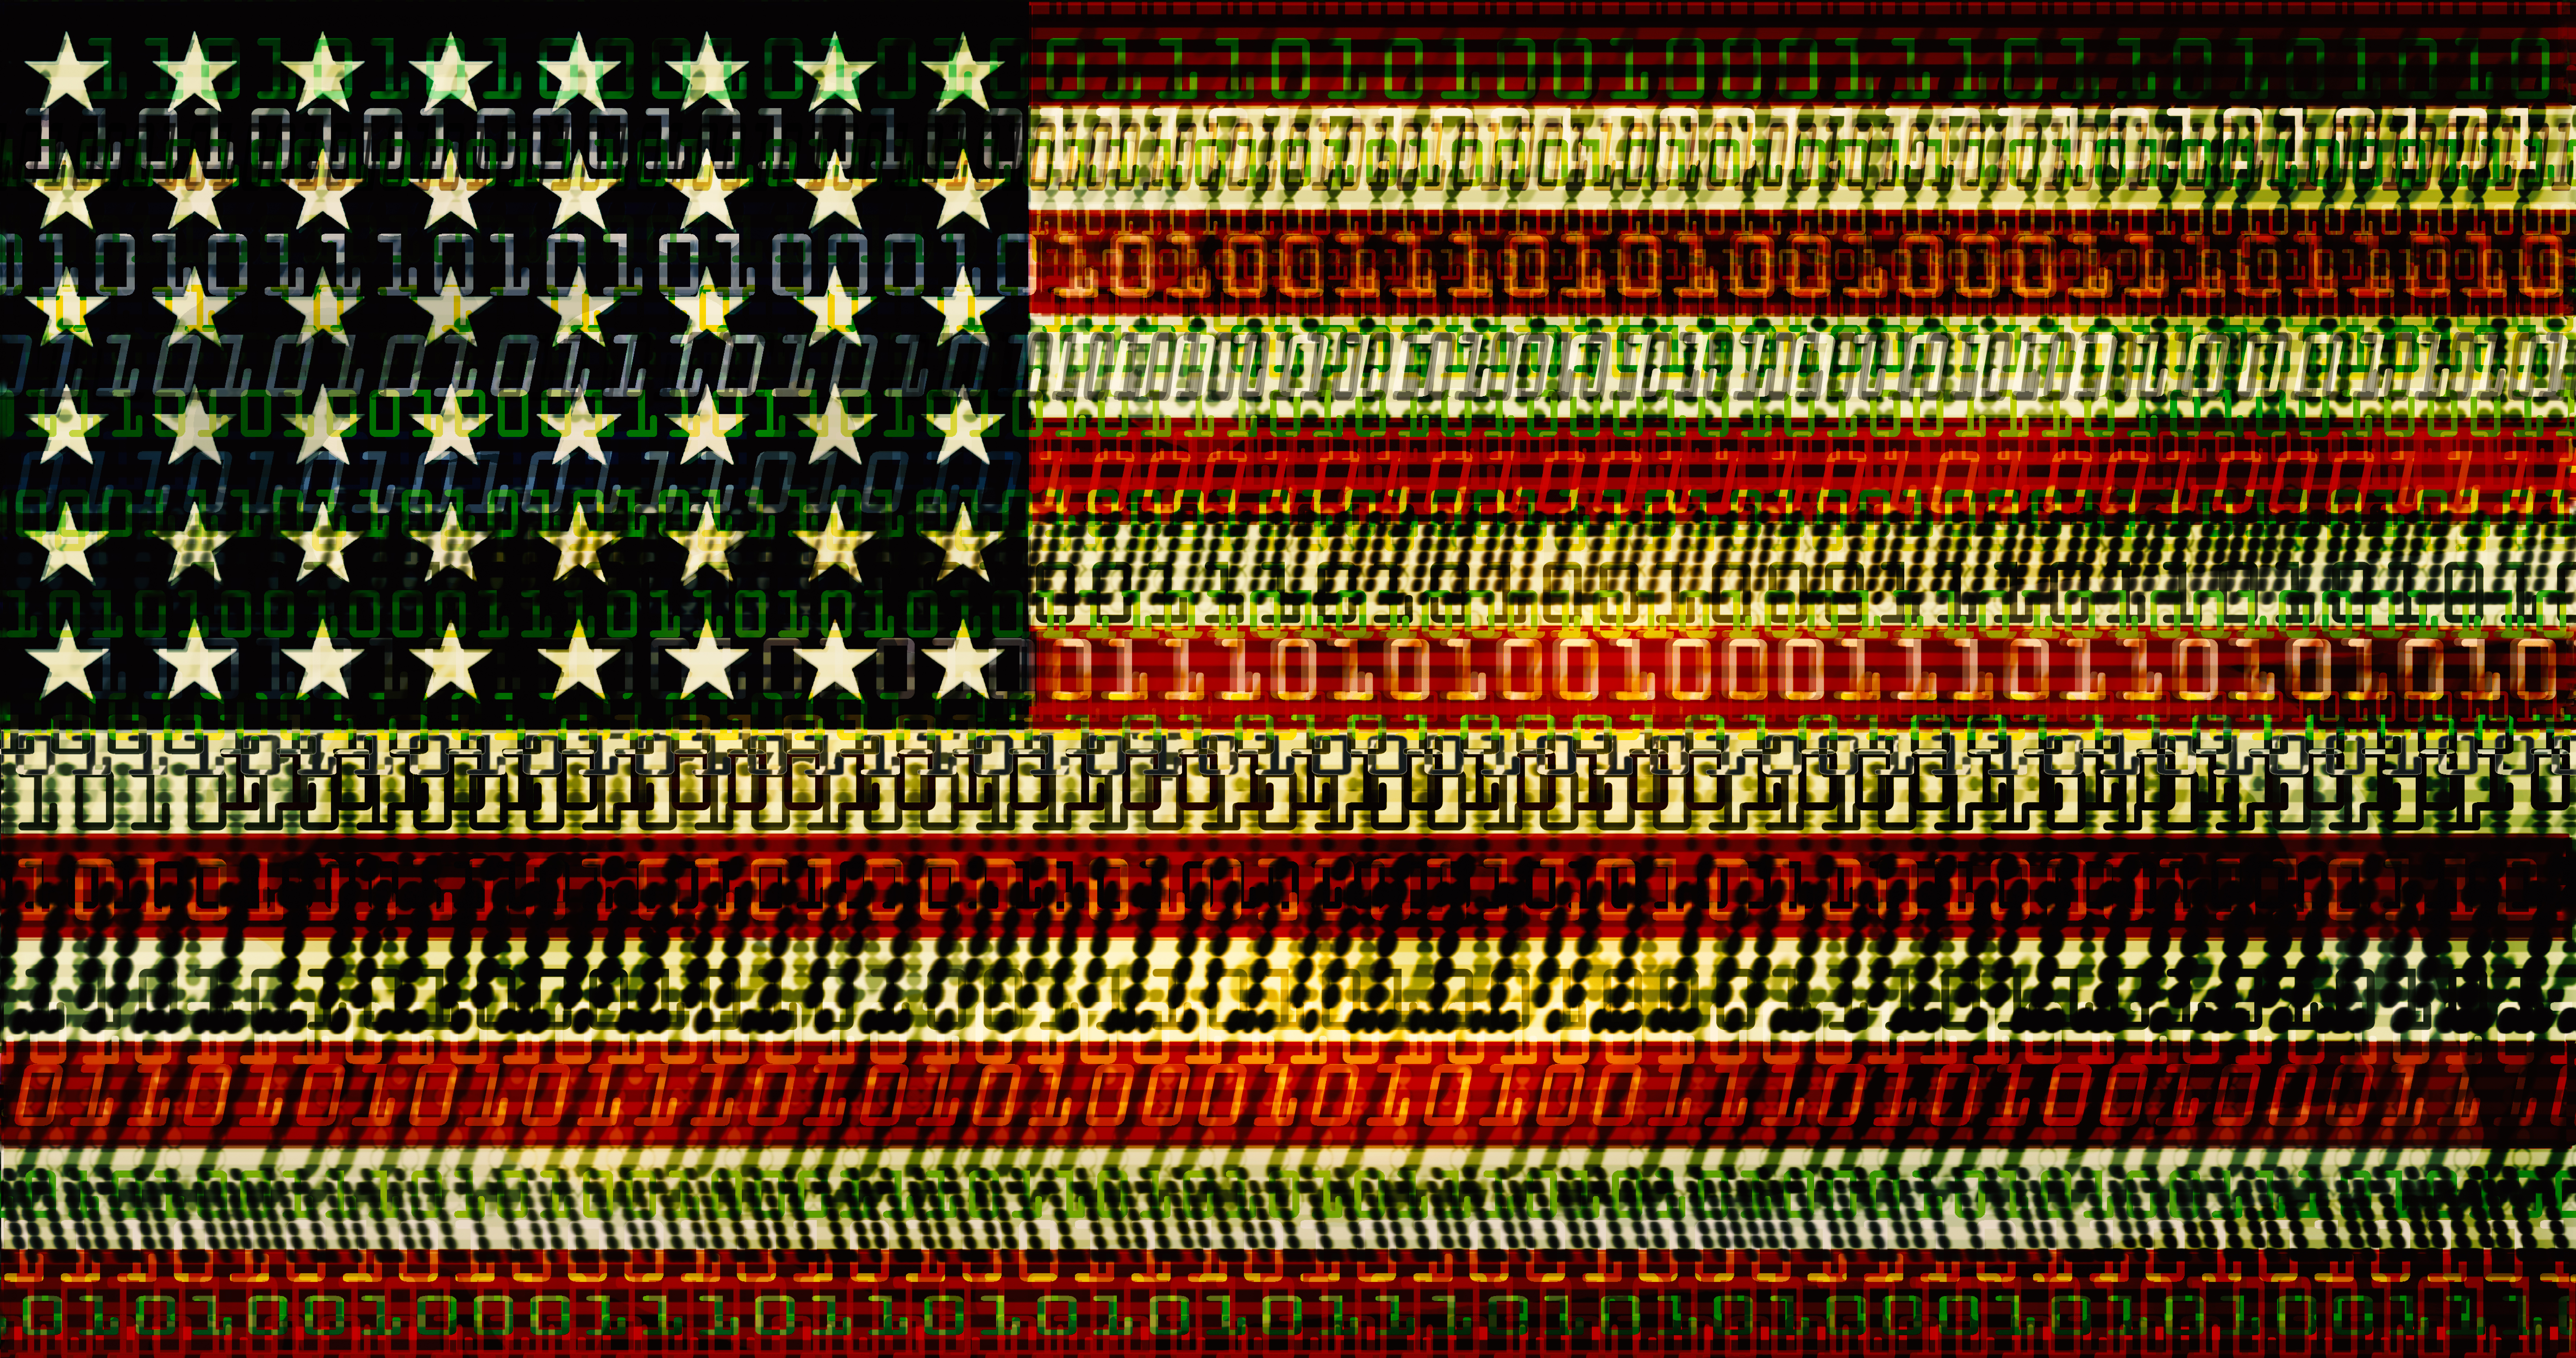 US flag showing streams of data: cyber crime, national security, trade, cultural exchange, etc